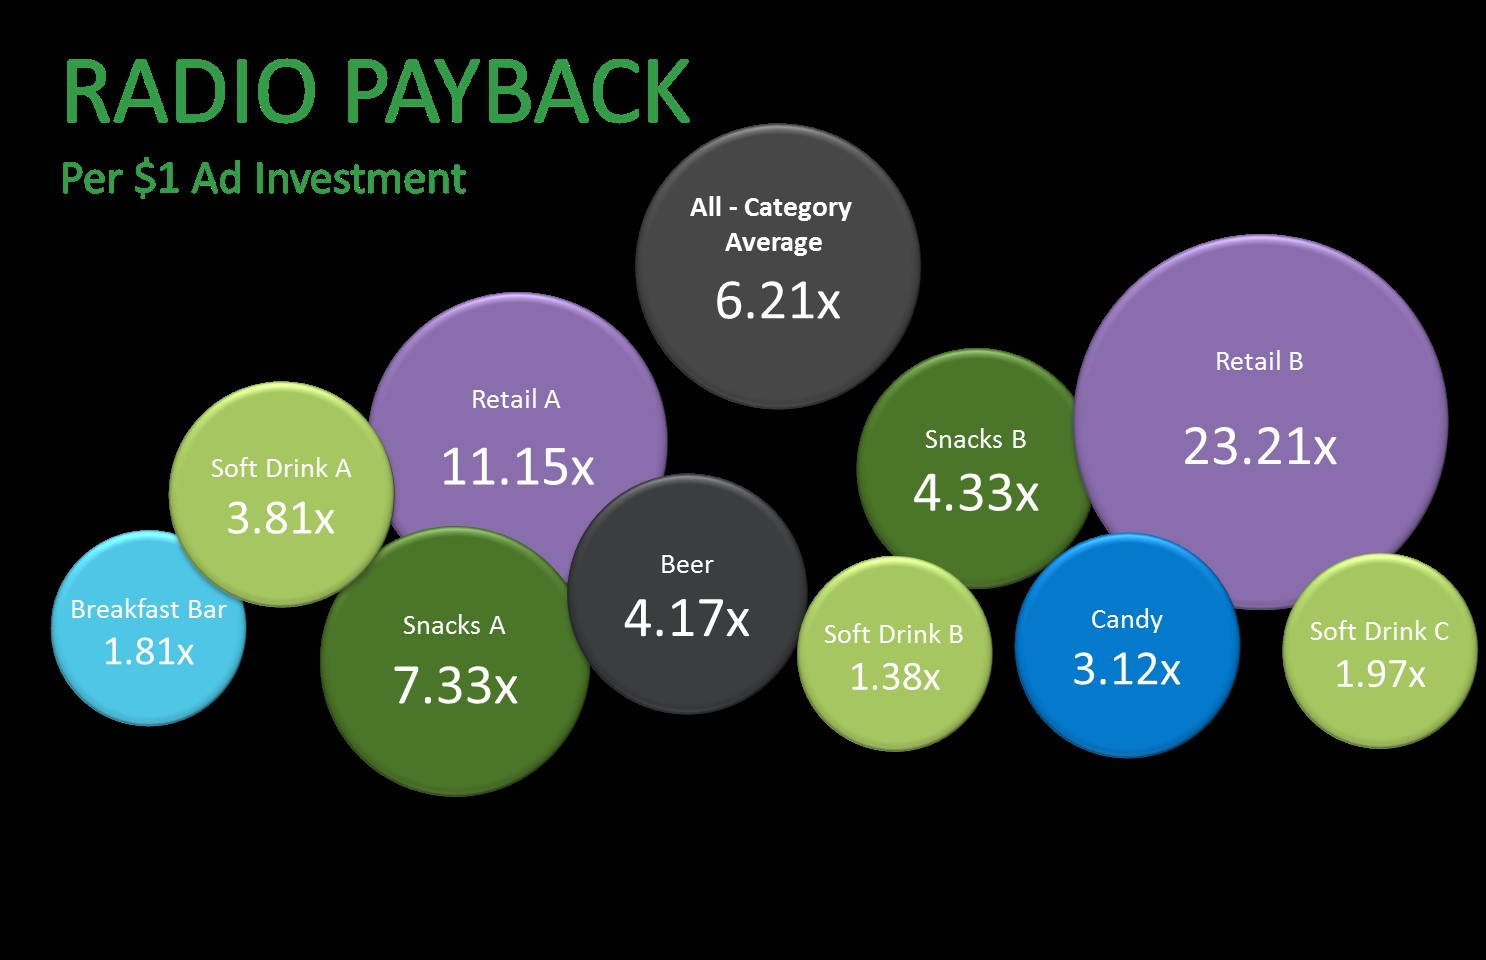 5fbfff9b7bb8 Figure 1.The average return on investment across various categories of  products/services surveyed.